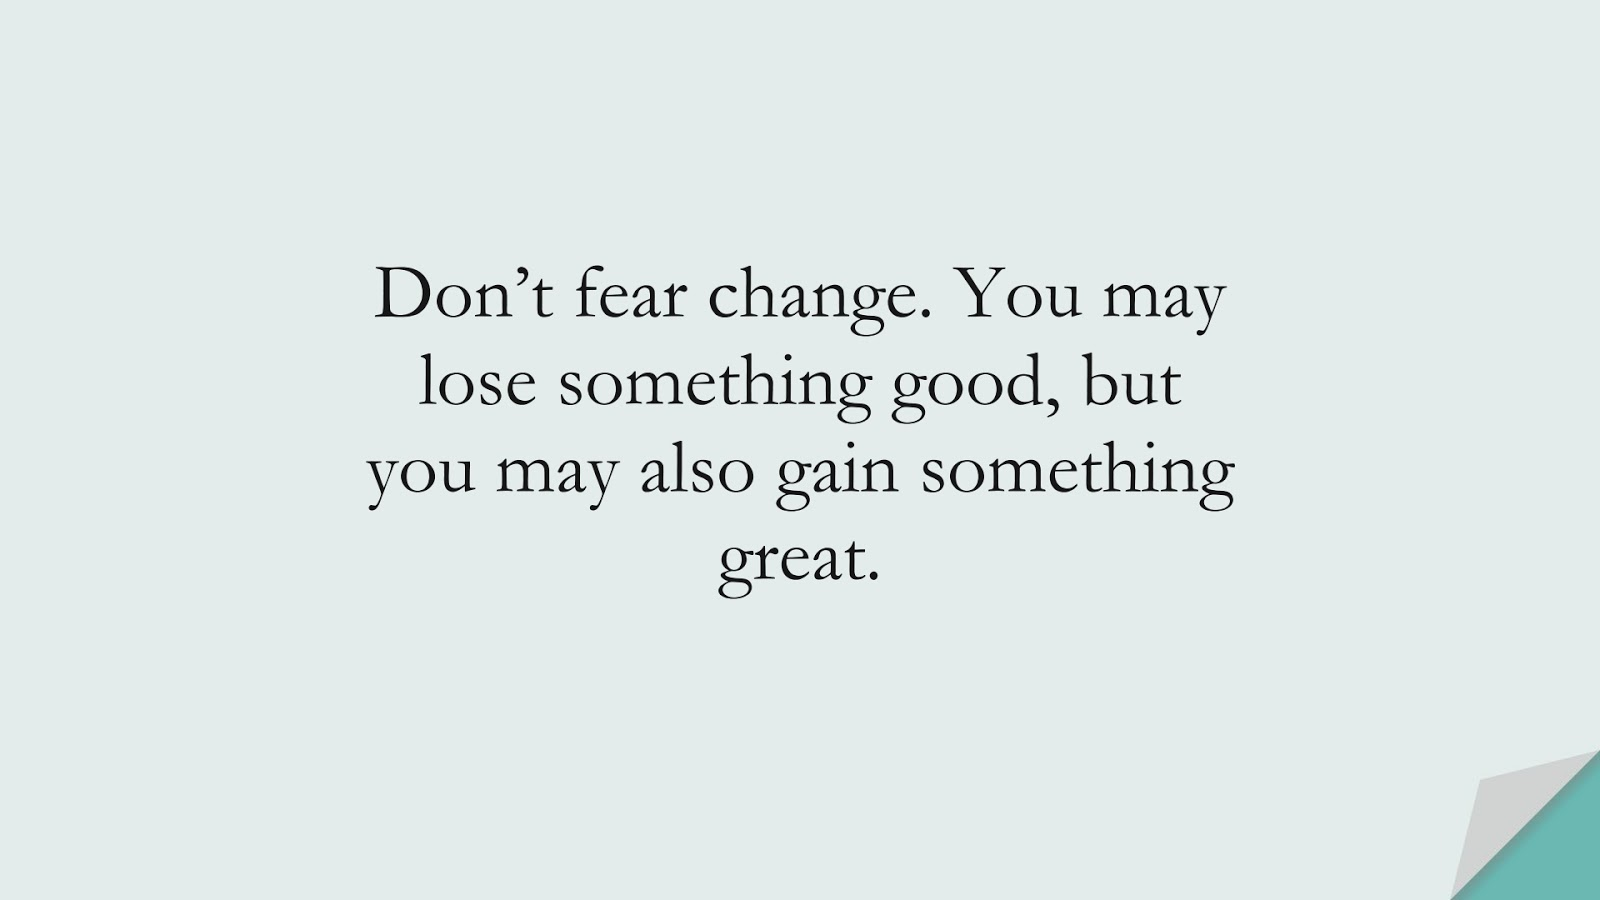 Don't fear change. You may lose something good, but you may also gain something great.FALSE